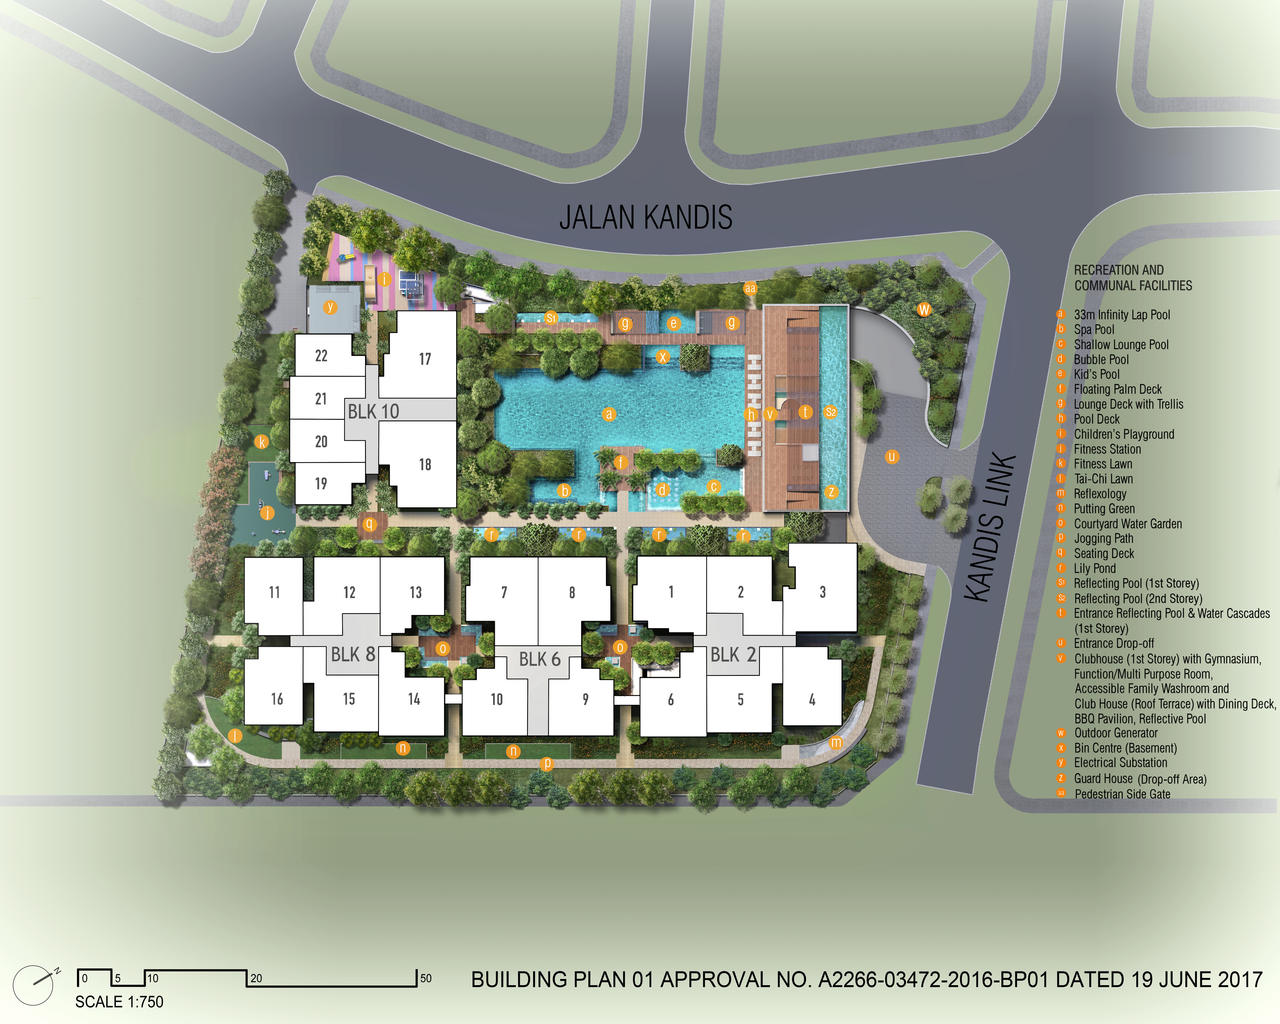 PropNex Local Projects - Kandis Residence Site Map (Dynamic Force Group)